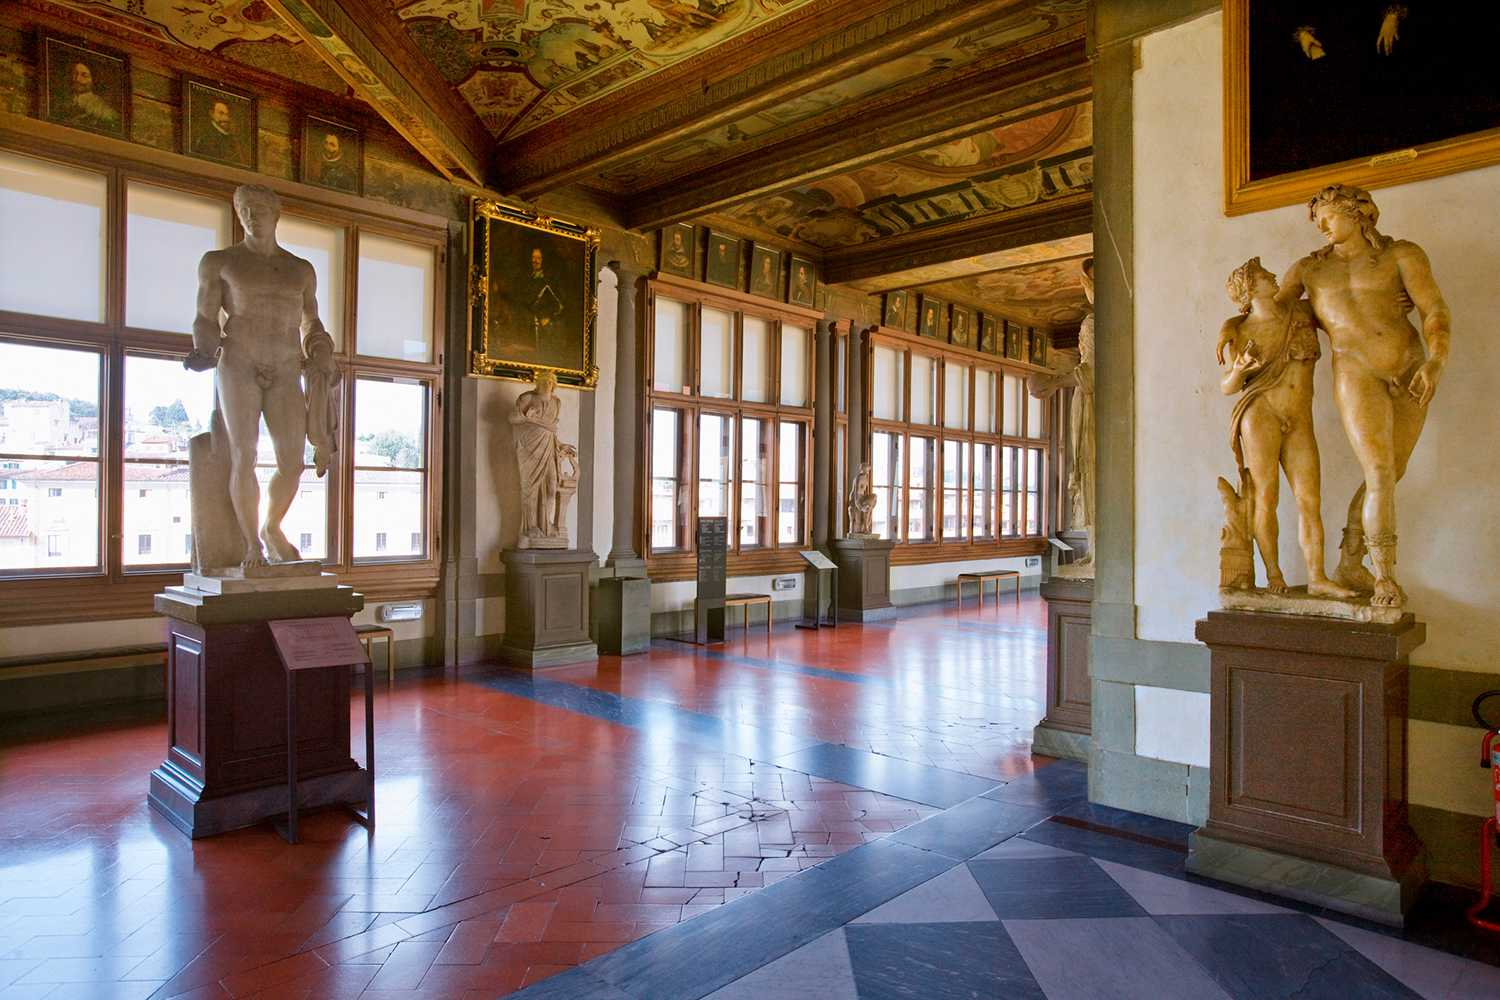 Statues on display in the Uffizi Gallery